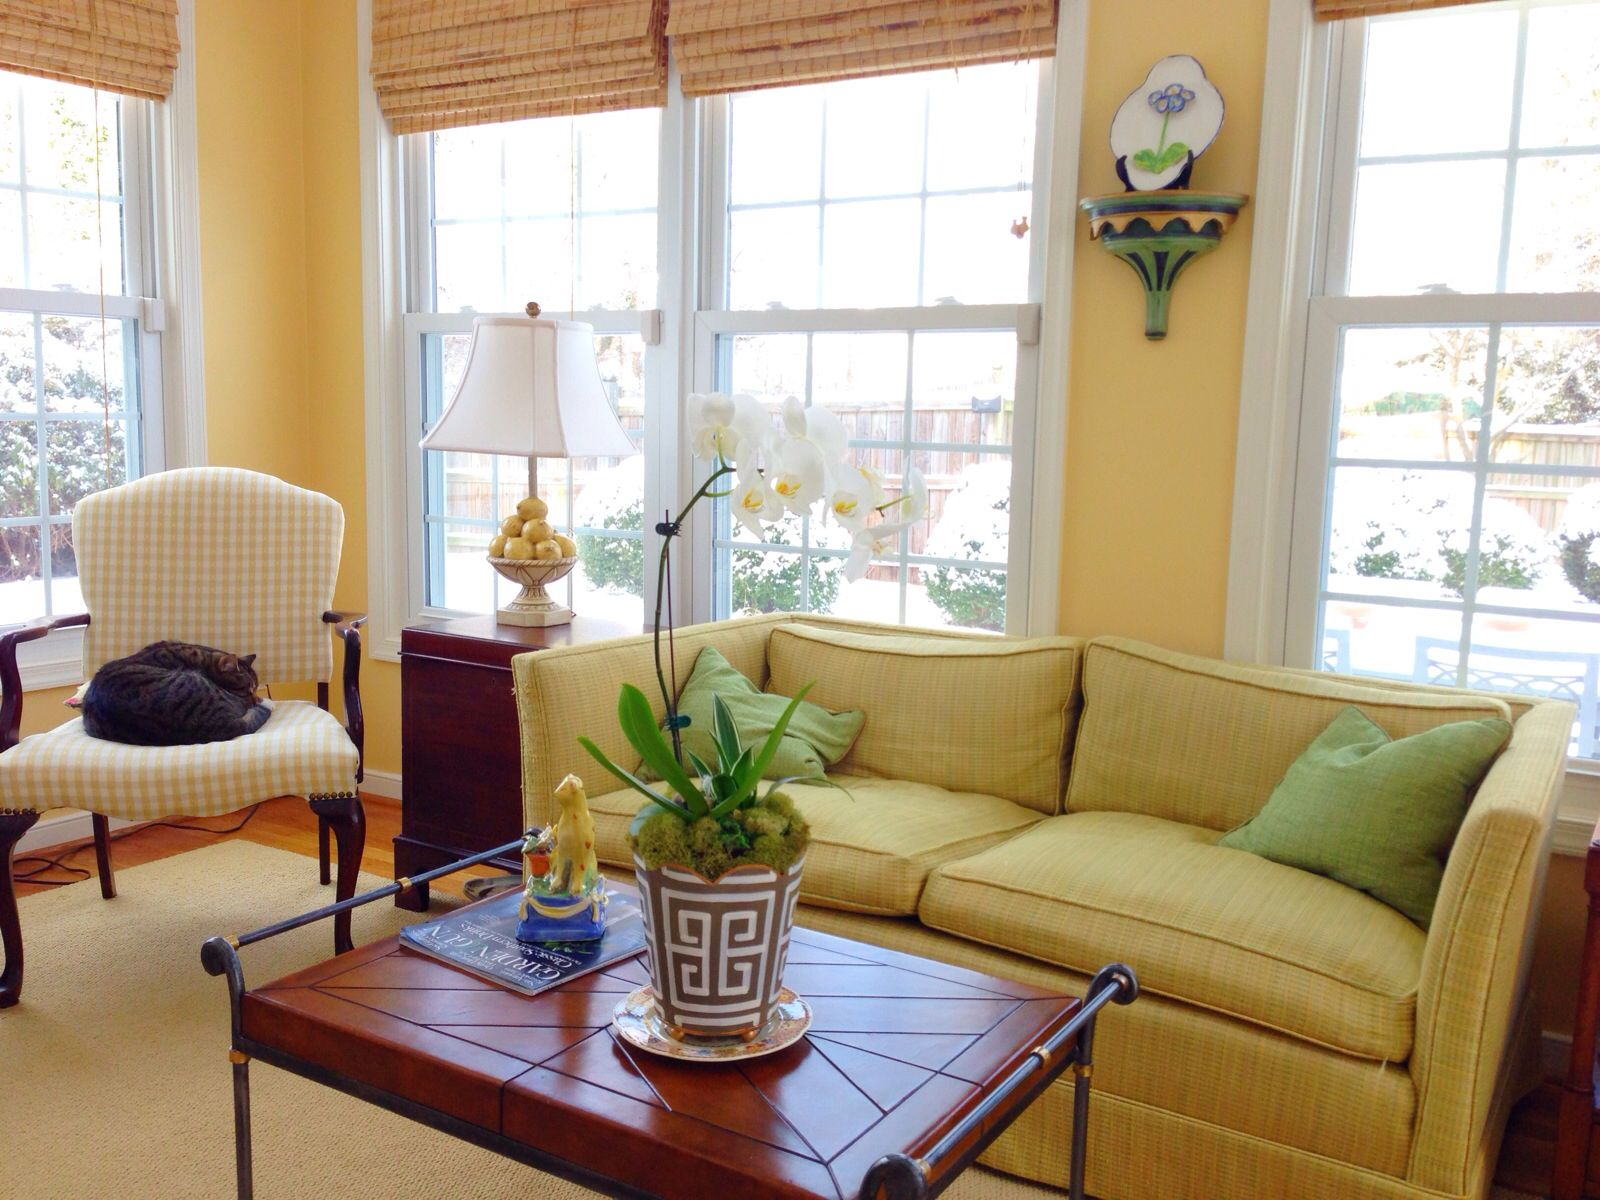 Sunroom Colors Breakfast Room Yellow Design Bethfowler Sunroom Decorating Small Living Room Turquoise Paint Colors For Living Room